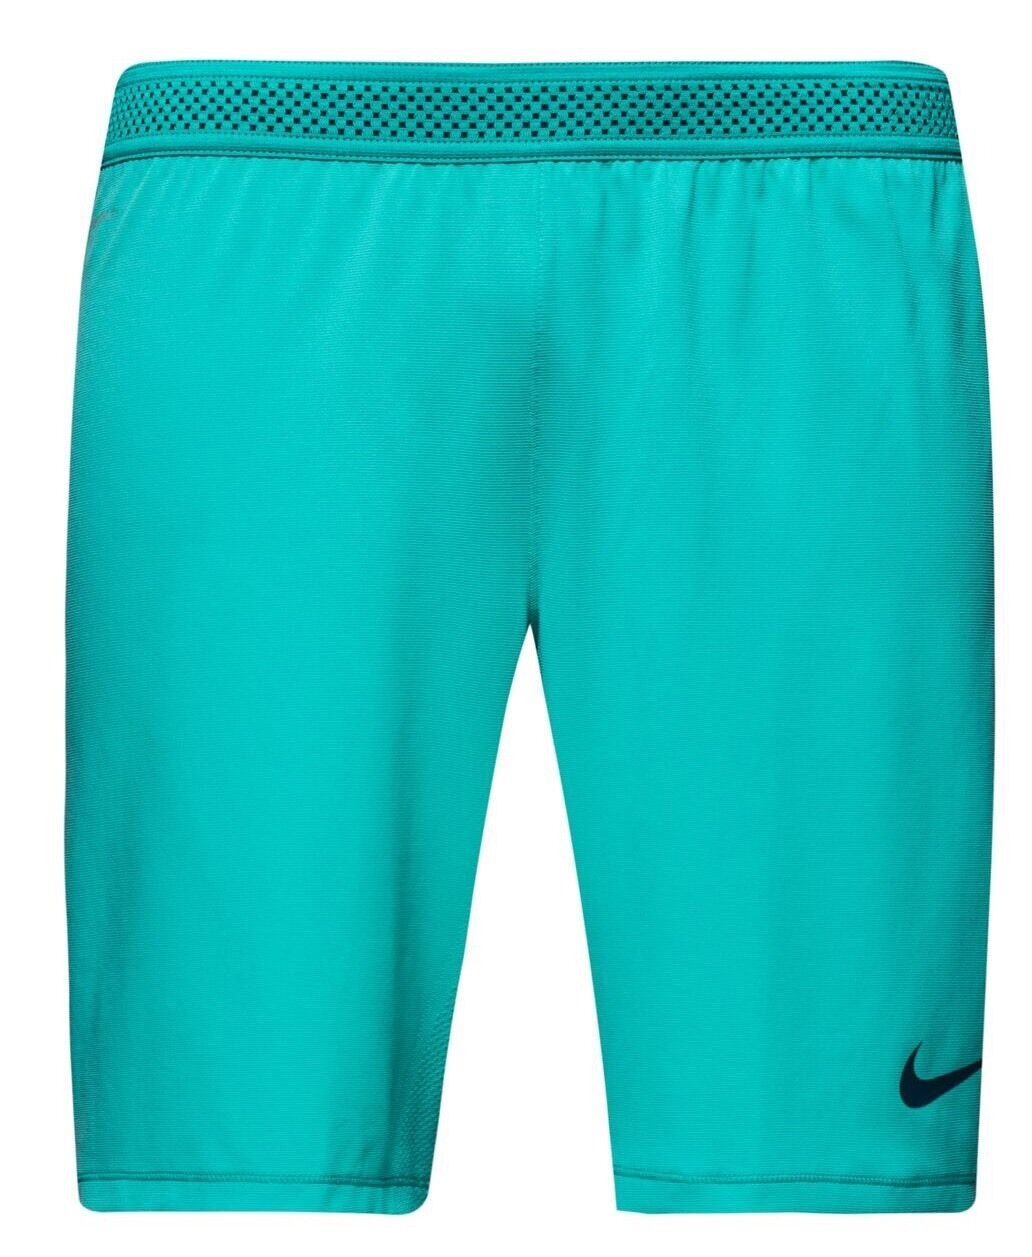 Nike Strike Aeroswift Woven Shorts (S) 725872 317